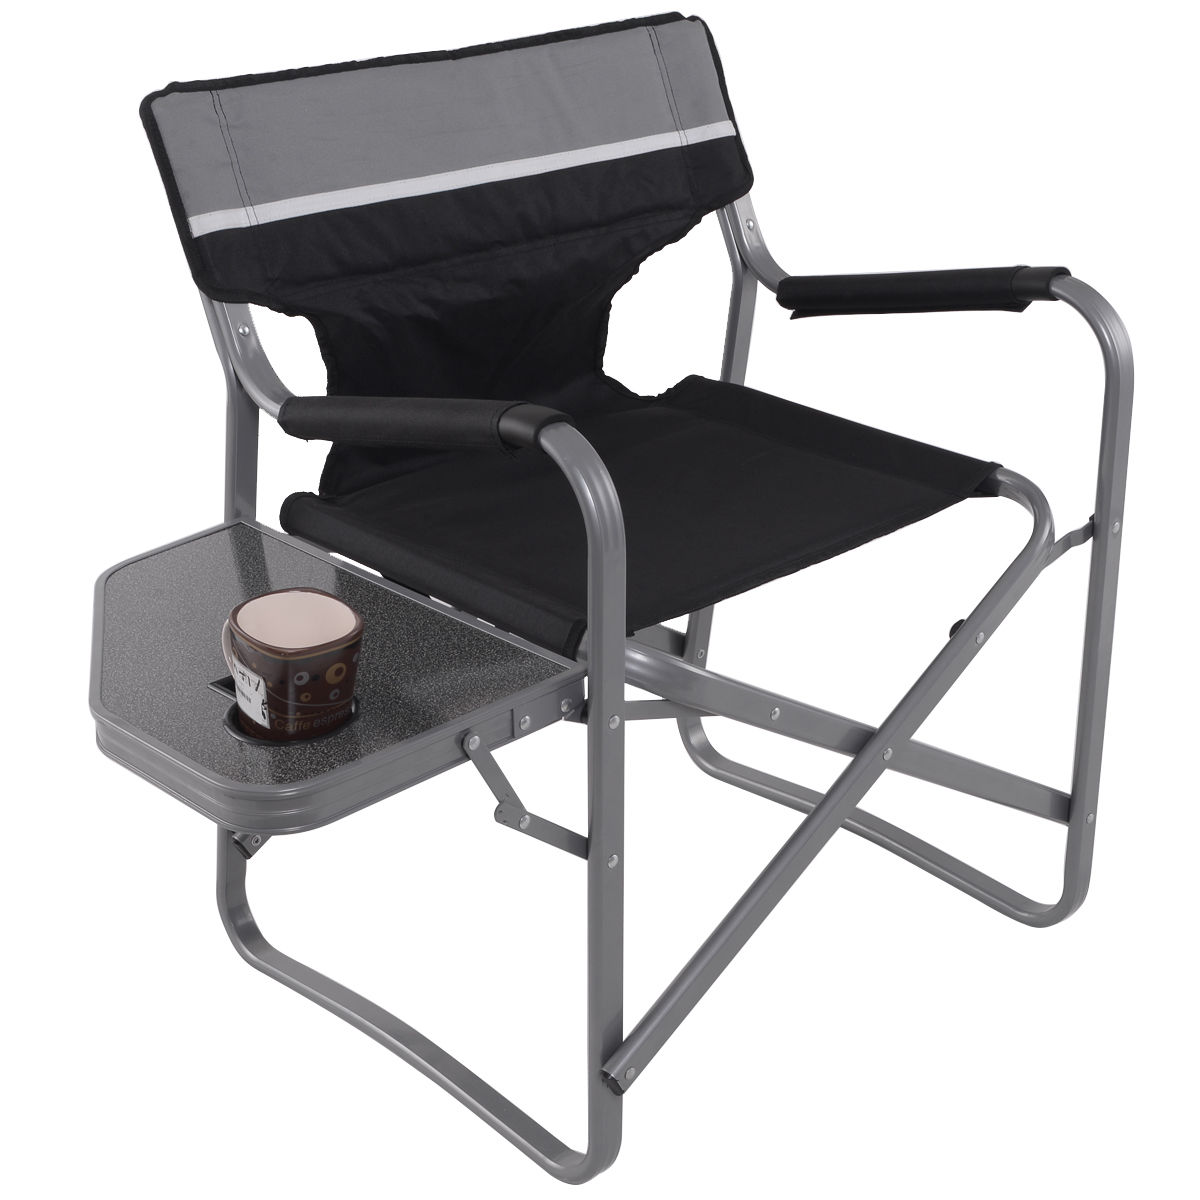 Folding Directors Chair With Side Table.Us 45 99 Giantex Director S Chair Folding Side Table Outdoor Camping Fishing Chair With Cup Holder Portable Director Chair Op3208 On Aliexpress